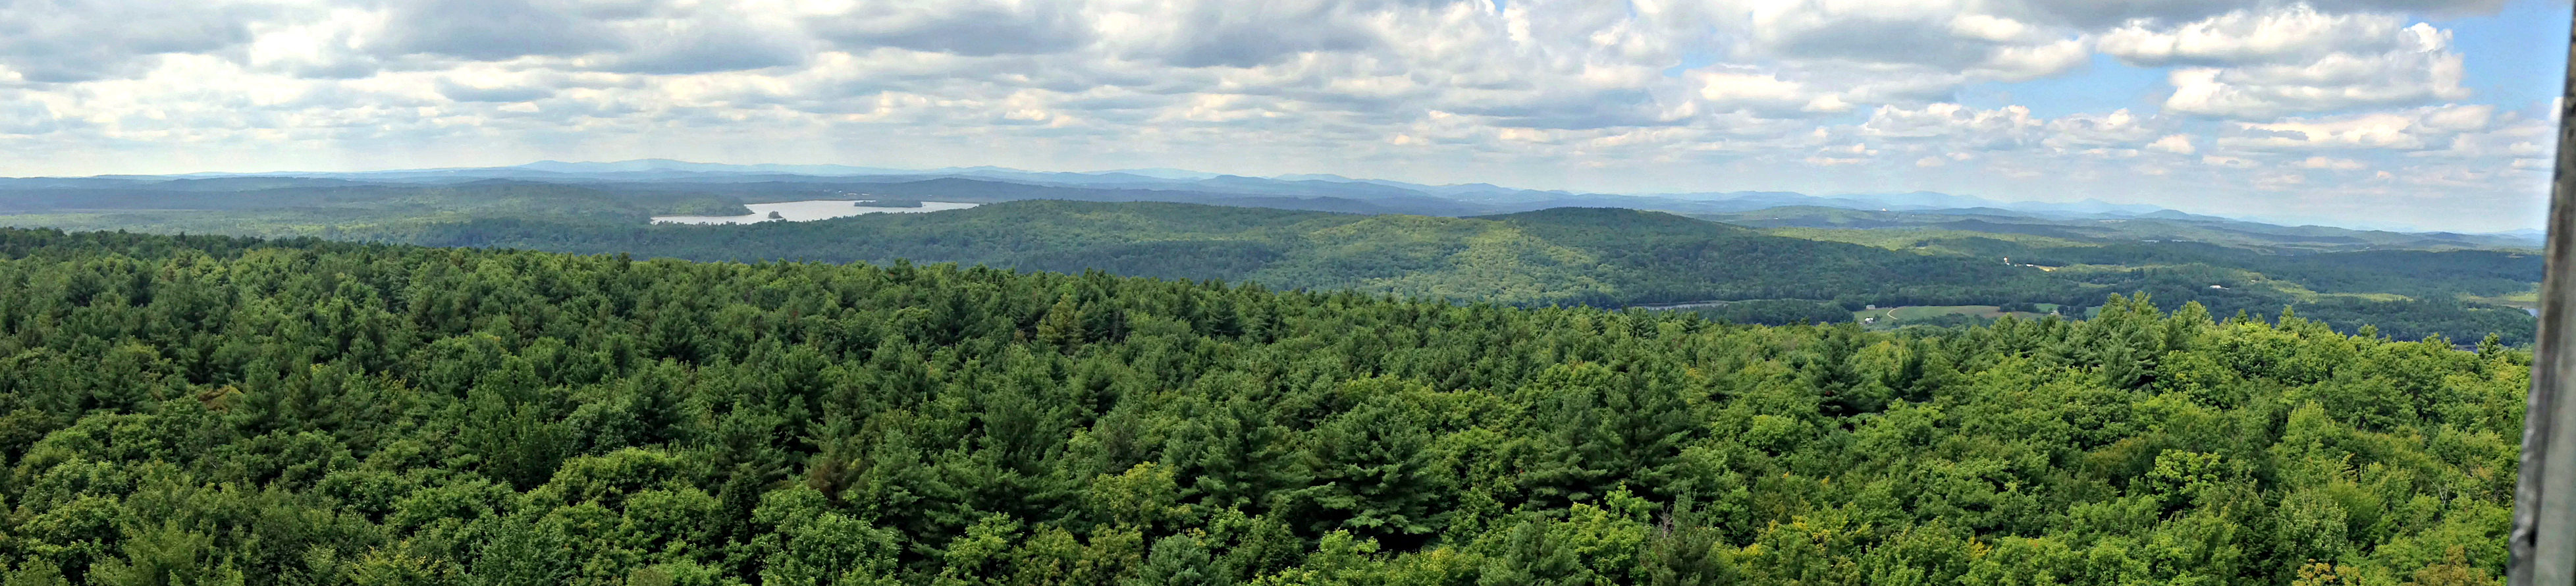 Looking west from Mt. Pisgah Firetower:  Lale Androscoggin left of center.